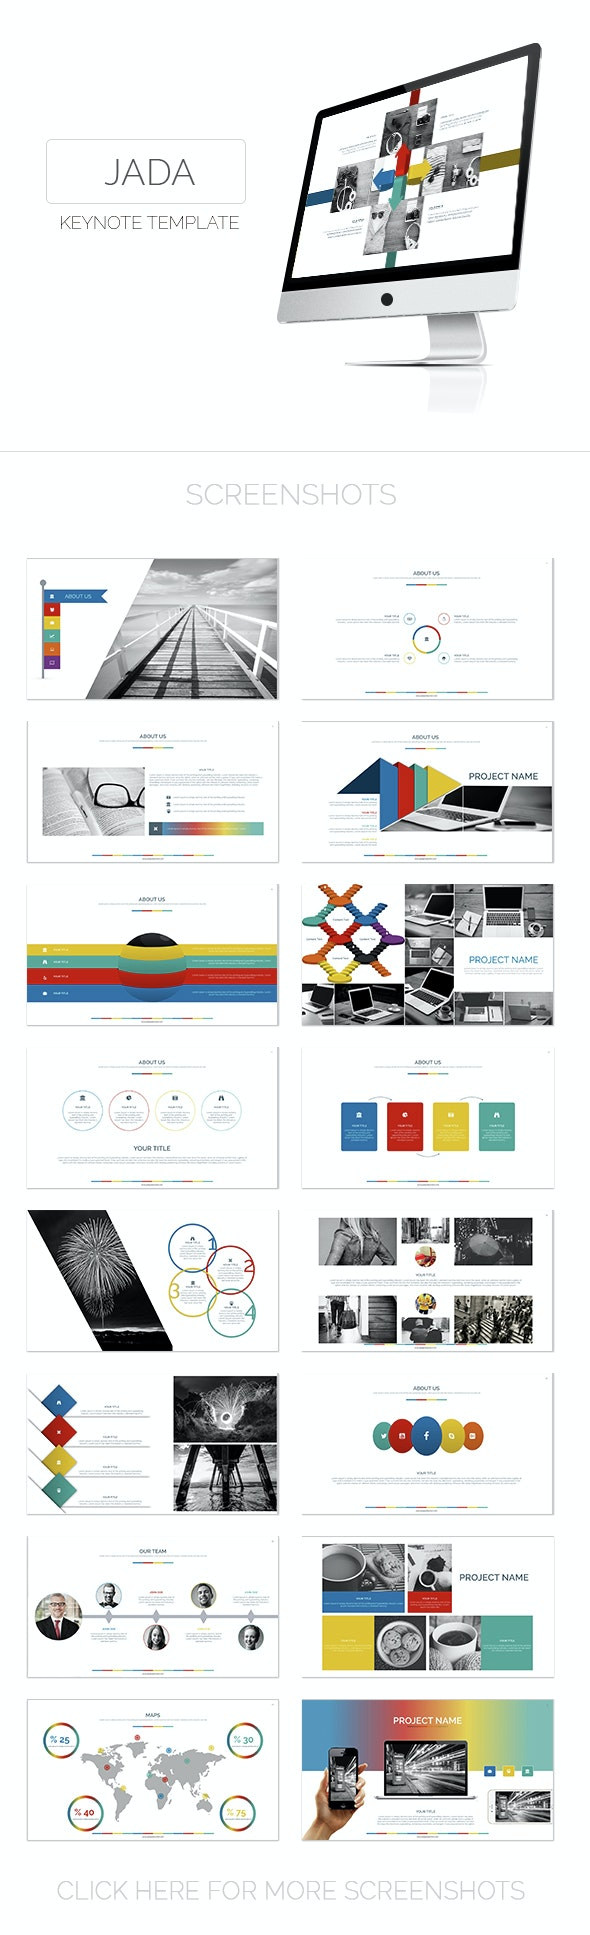 Jada Keynote Template - Creative Keynote Templates